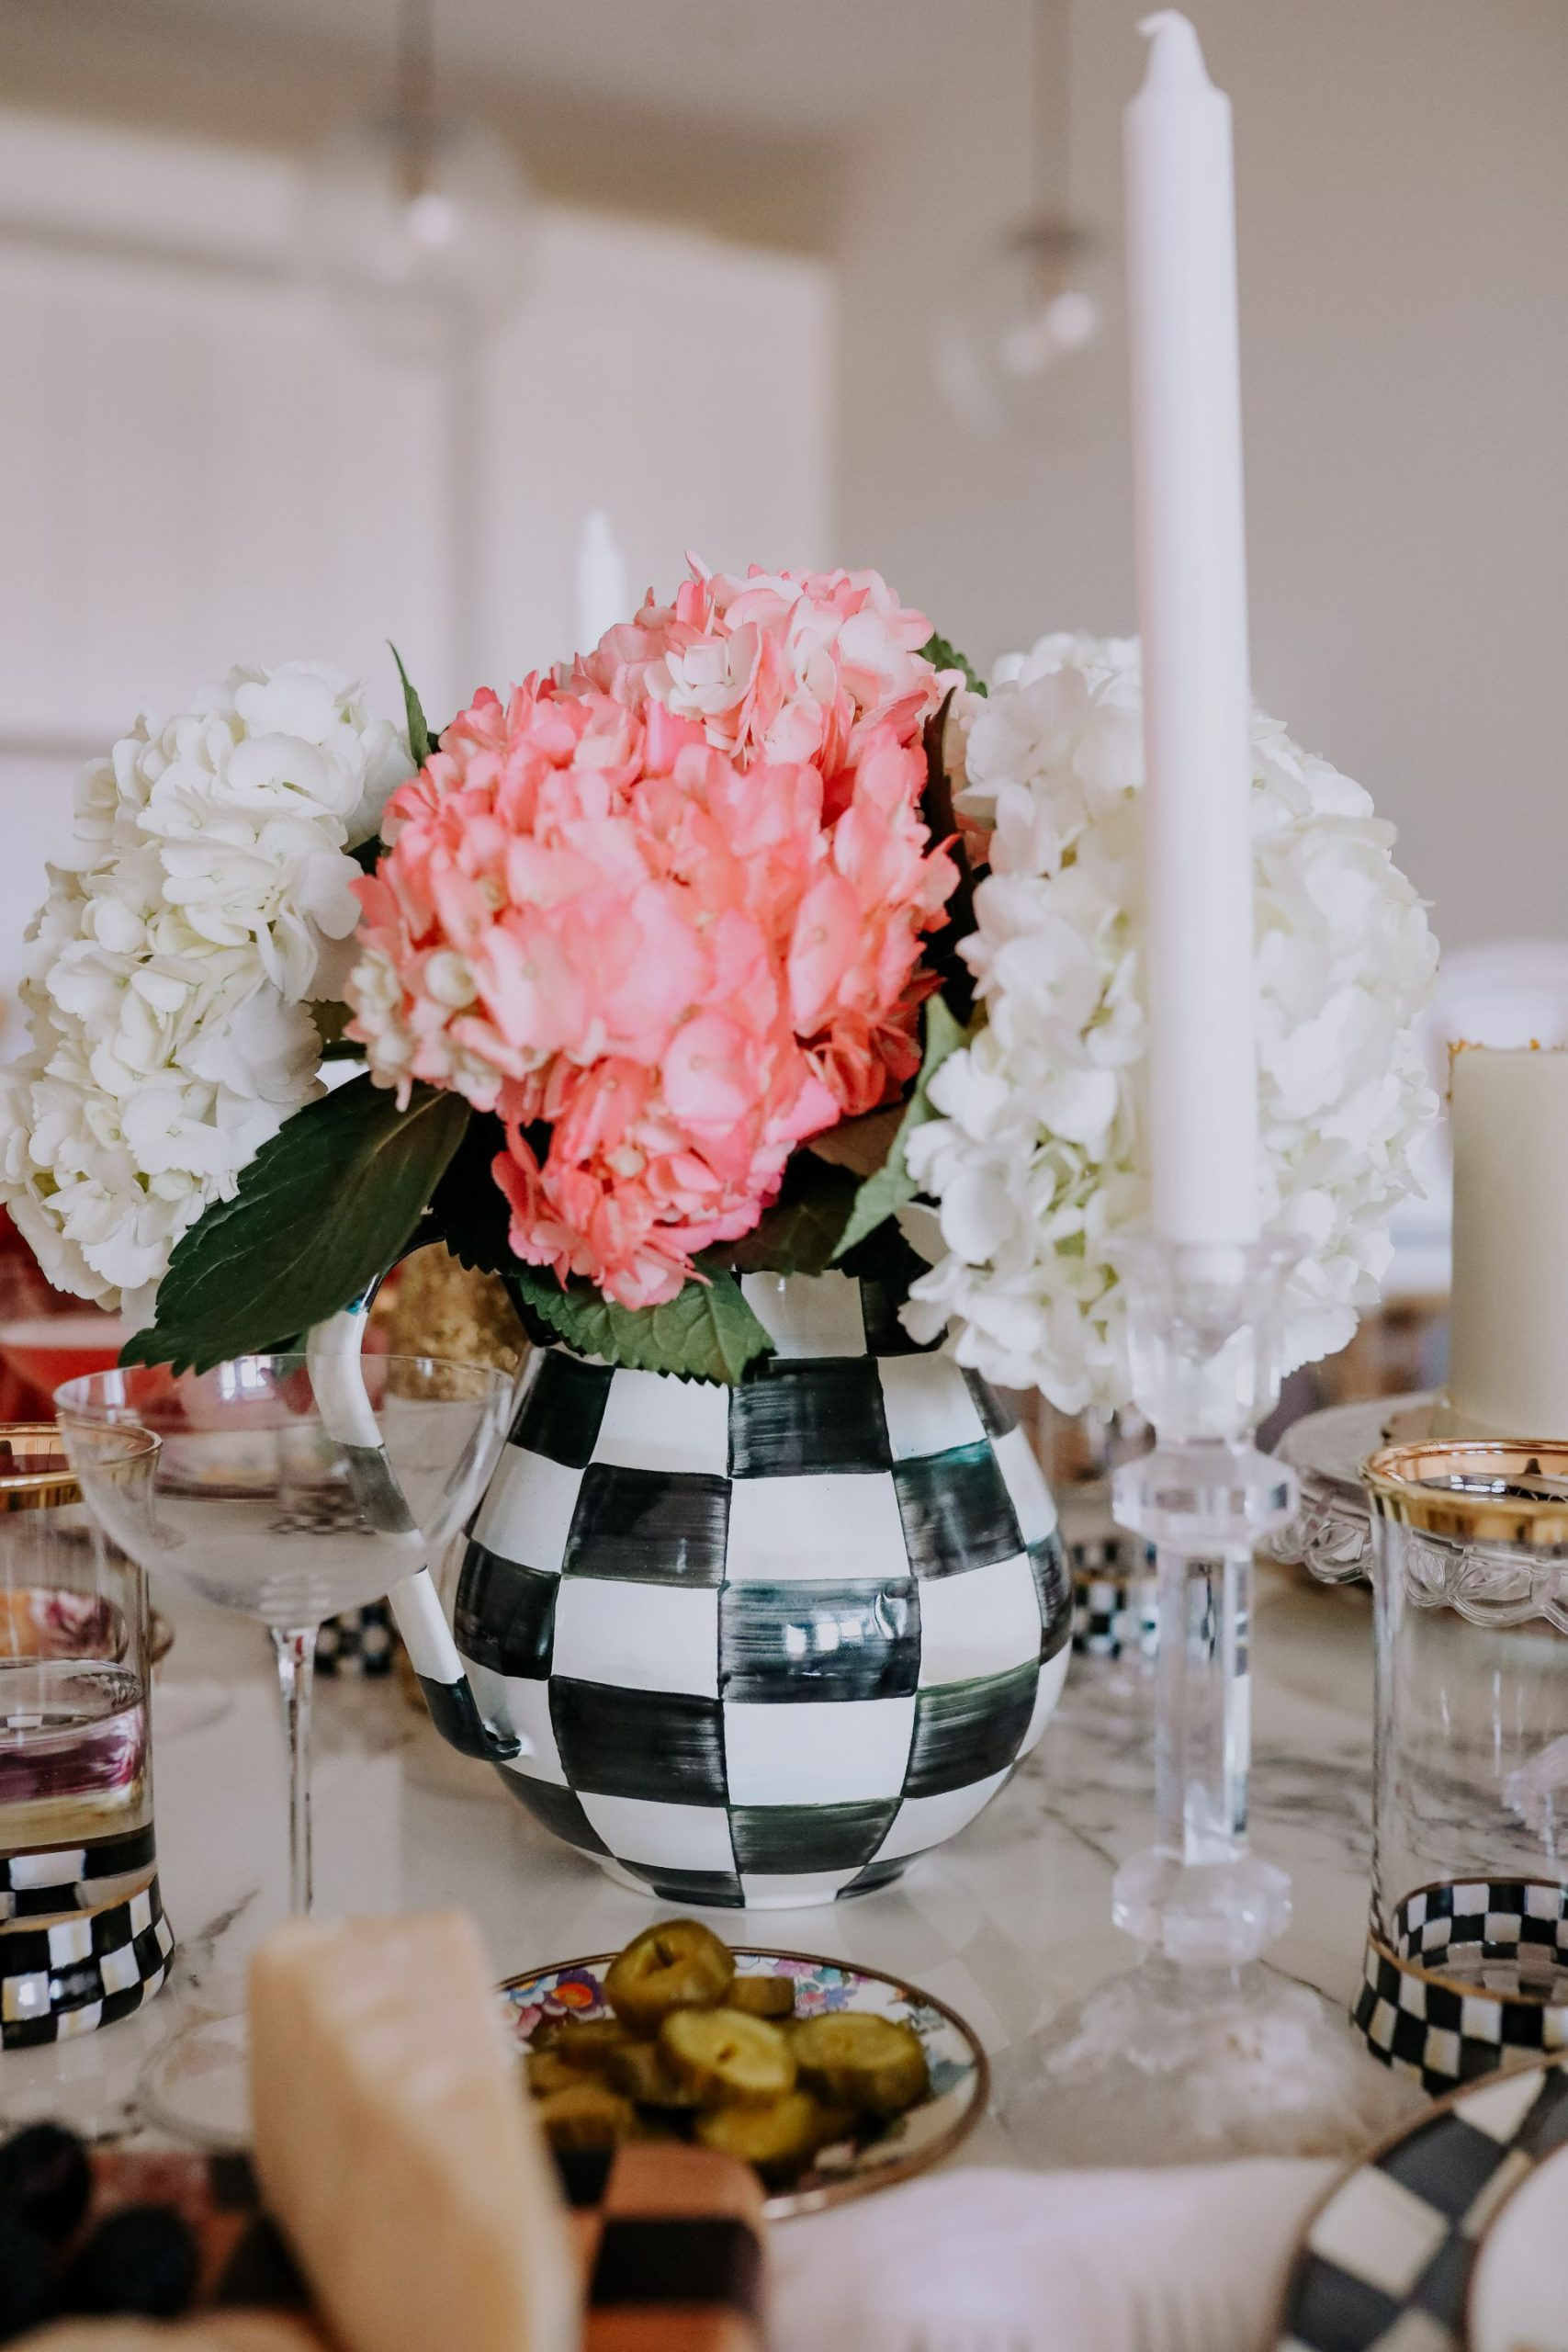 How to set a table MacKenzie Childs, Courtly Check MacKenzie Childs, how to decorate with Mackenzie-Childs, Jennifer Worman Chicago Lifestyle blogger, Mackenzie-childs, Beautiful Handcrafted Ceramics, Dinnerware, Home Decor, black and white dinnerware, black and white check, courtly check, Mackenzie-childs courtly check, kitchen inspiration, dining inspiration, home inspiration, glam home inspiration, classic home inspiration, classic tablecape, check table ideas, checkered table decor, Mackenzie-childs place setting, Mackenzie-childs water pitcher